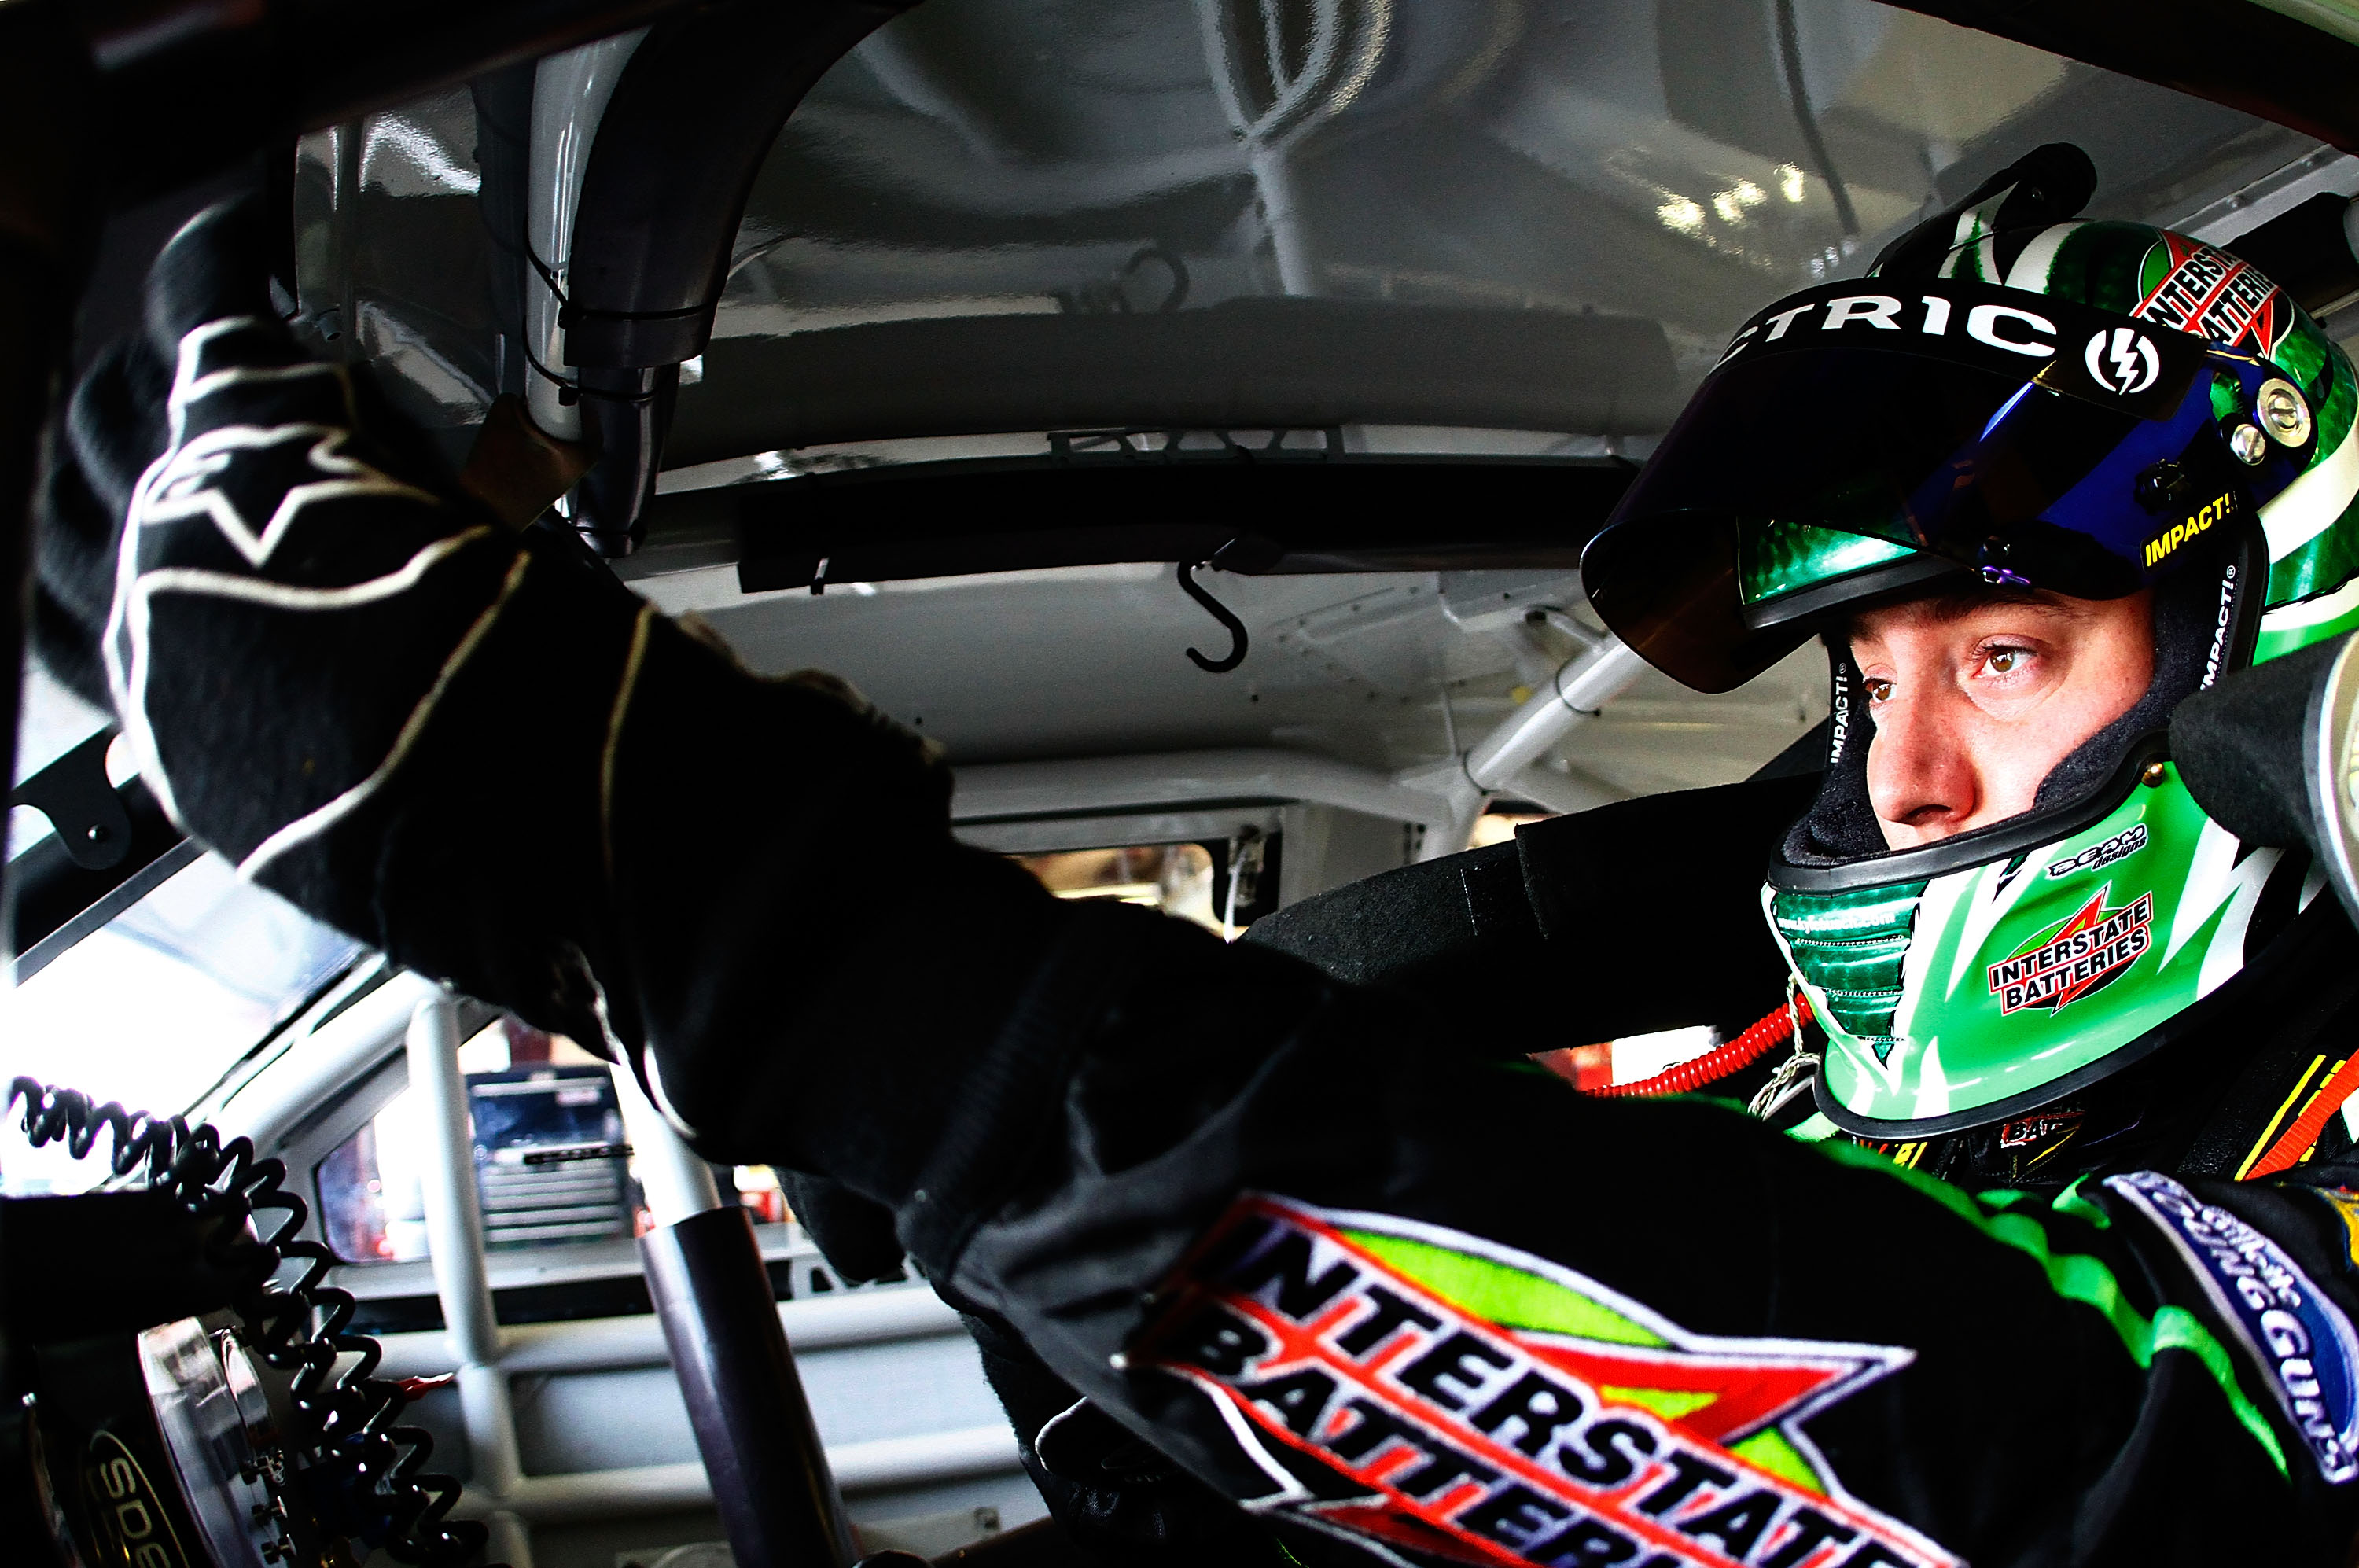 BROOKLYN, MI - AUGUST 13:  Kyle Busch, driver of the #18 Interstate Batteries Toyota, readies himself in his car during practice for the NASCAR Sprint Cup Series CARFAX 400 at Michigan International Speedway on August 13, 2010 in Brooklyn, Michigan.  (Pho